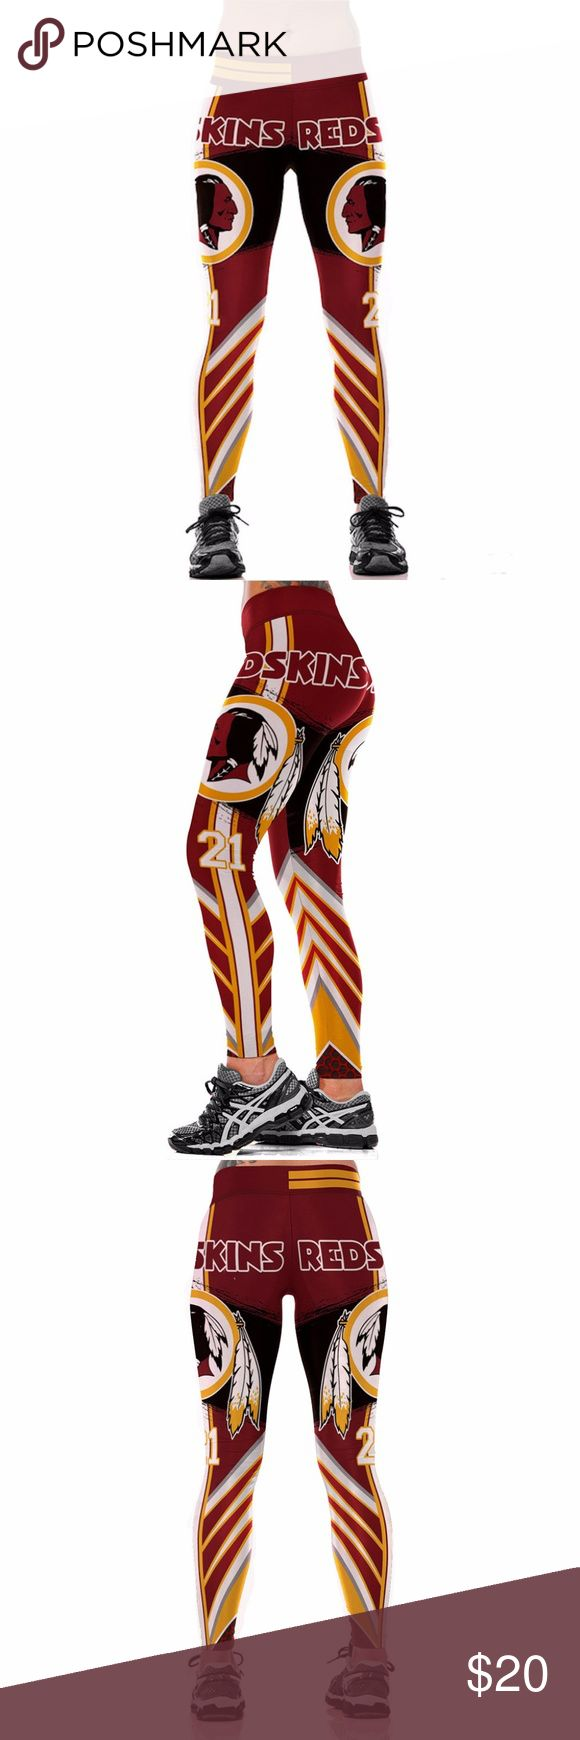 Washington Redskins Team Leggings Lightweight soft- quick dry breathable fabric Suitable for any kind of workout, gym, yoga, Zumba, cycling, etc. or casual wear High-quality construction with 6-thread double lock stitch seams Four-way Stretch Material: 82% Polyester, 18% Spandex Pants Leggings